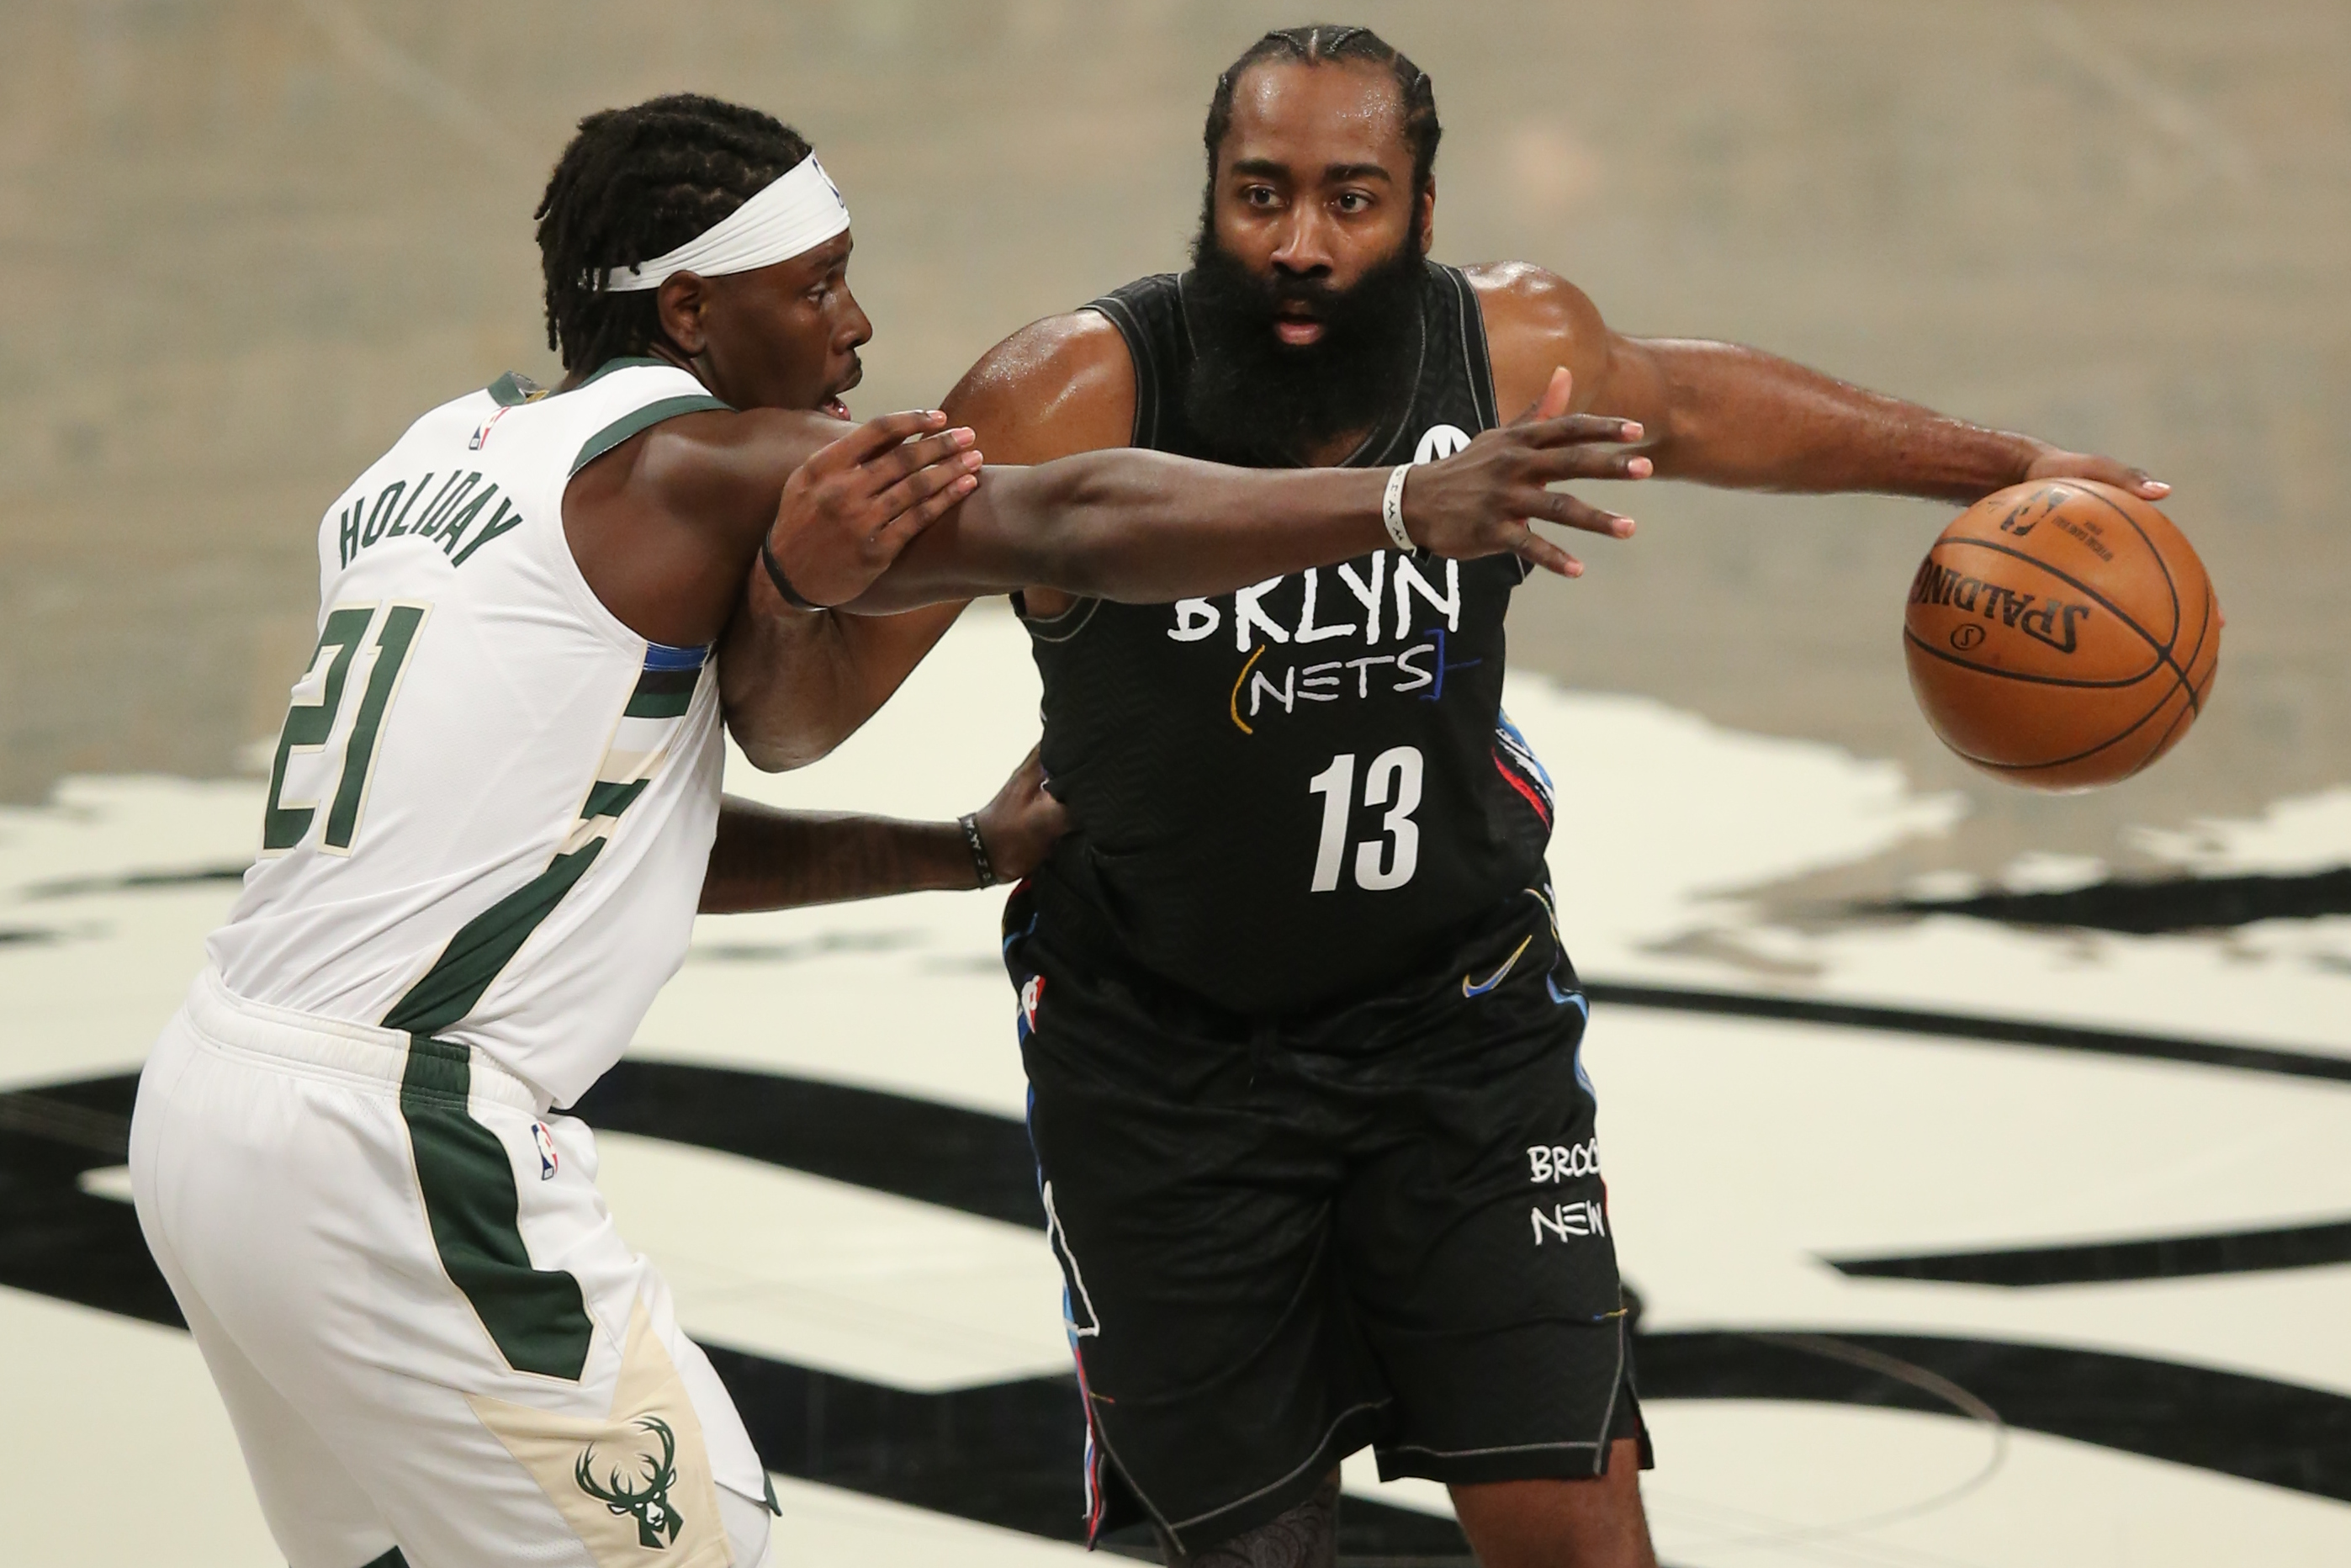 Brooklyn Nets shooting guard James Harden (13) controls the ball against Milwaukee Bucks point guard Jrue Holiday (21) during the third quarter of game five of the second round of the 2021 NBA Playoffs at Barclays Center.